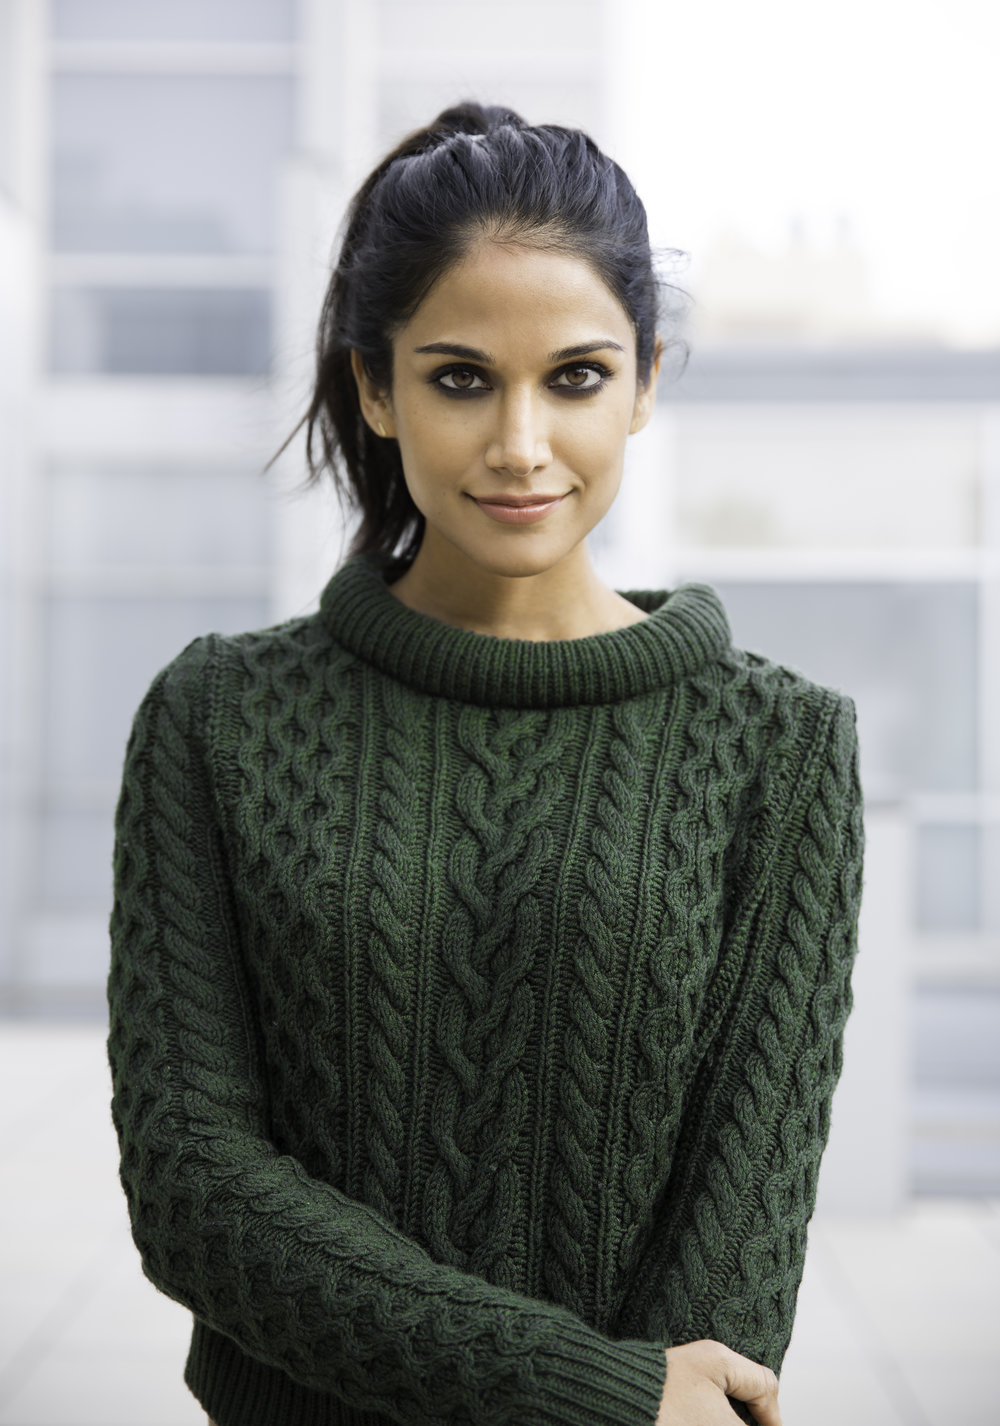 Melanie Chandra 2016-567-green sweater hi res.jpg